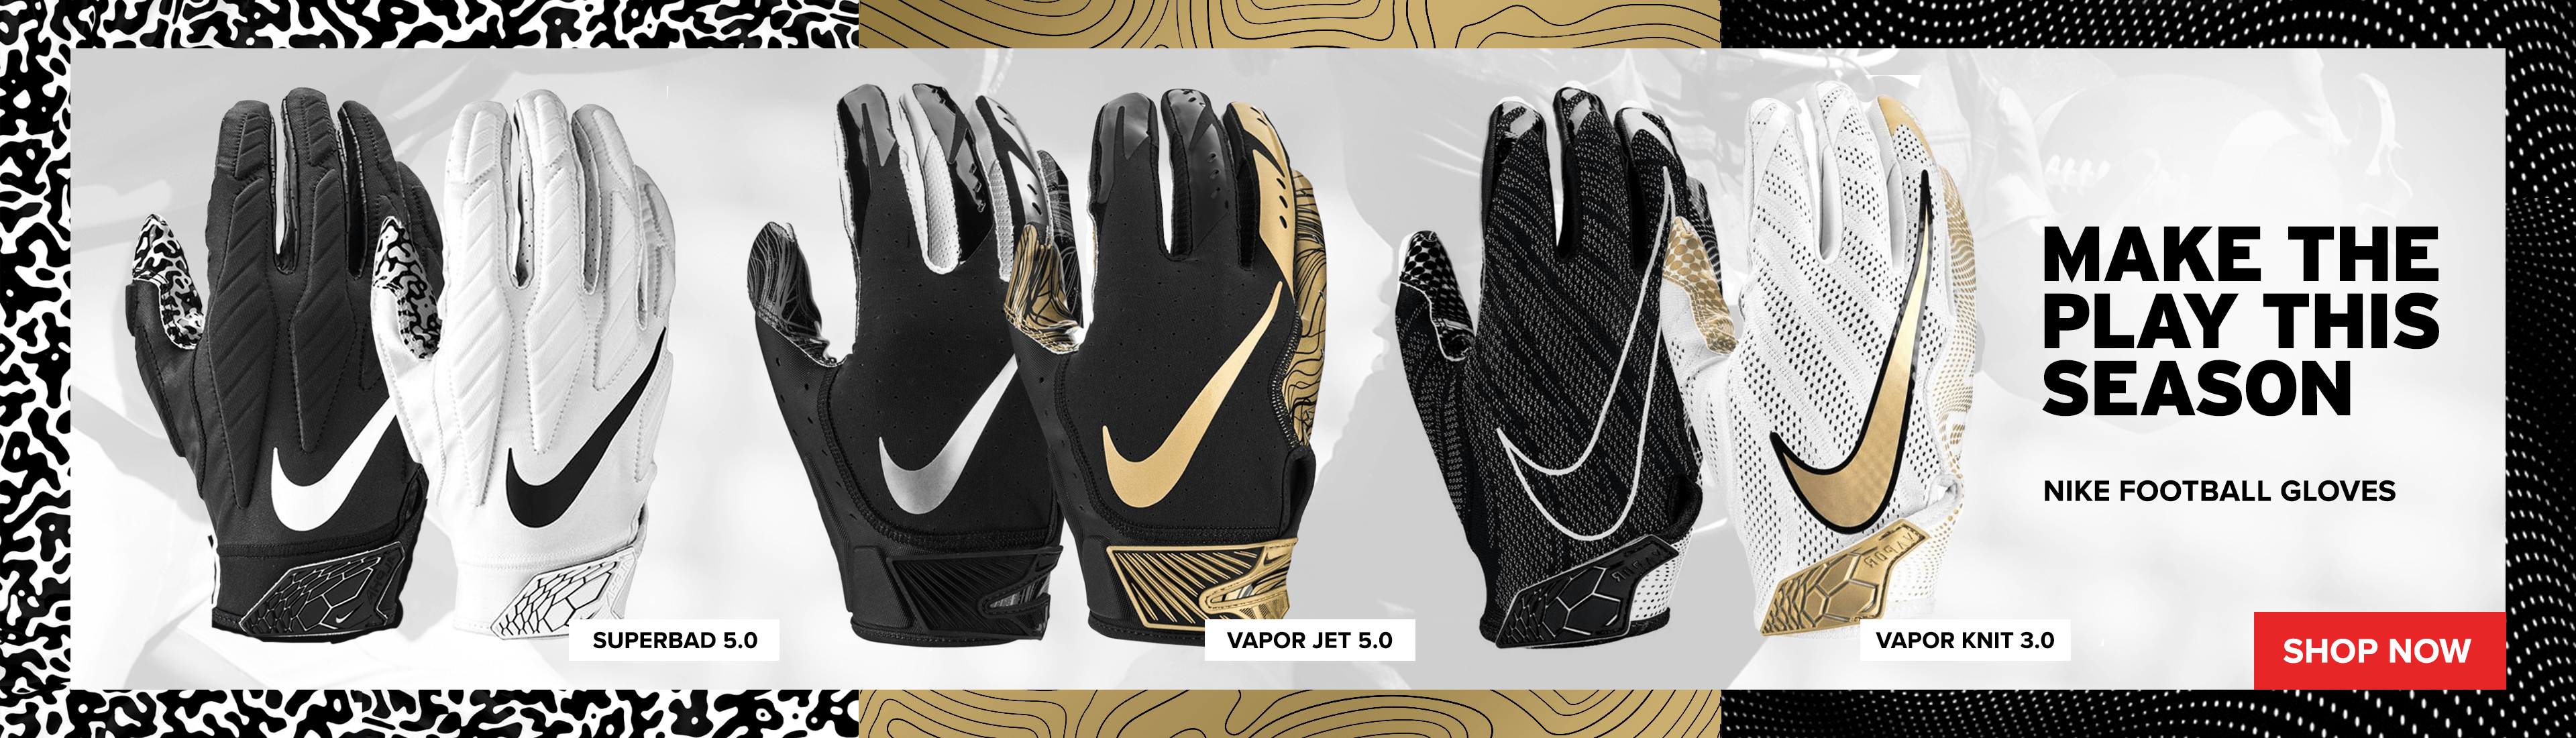 Nike Football Gloves | Kahunaverse Sports